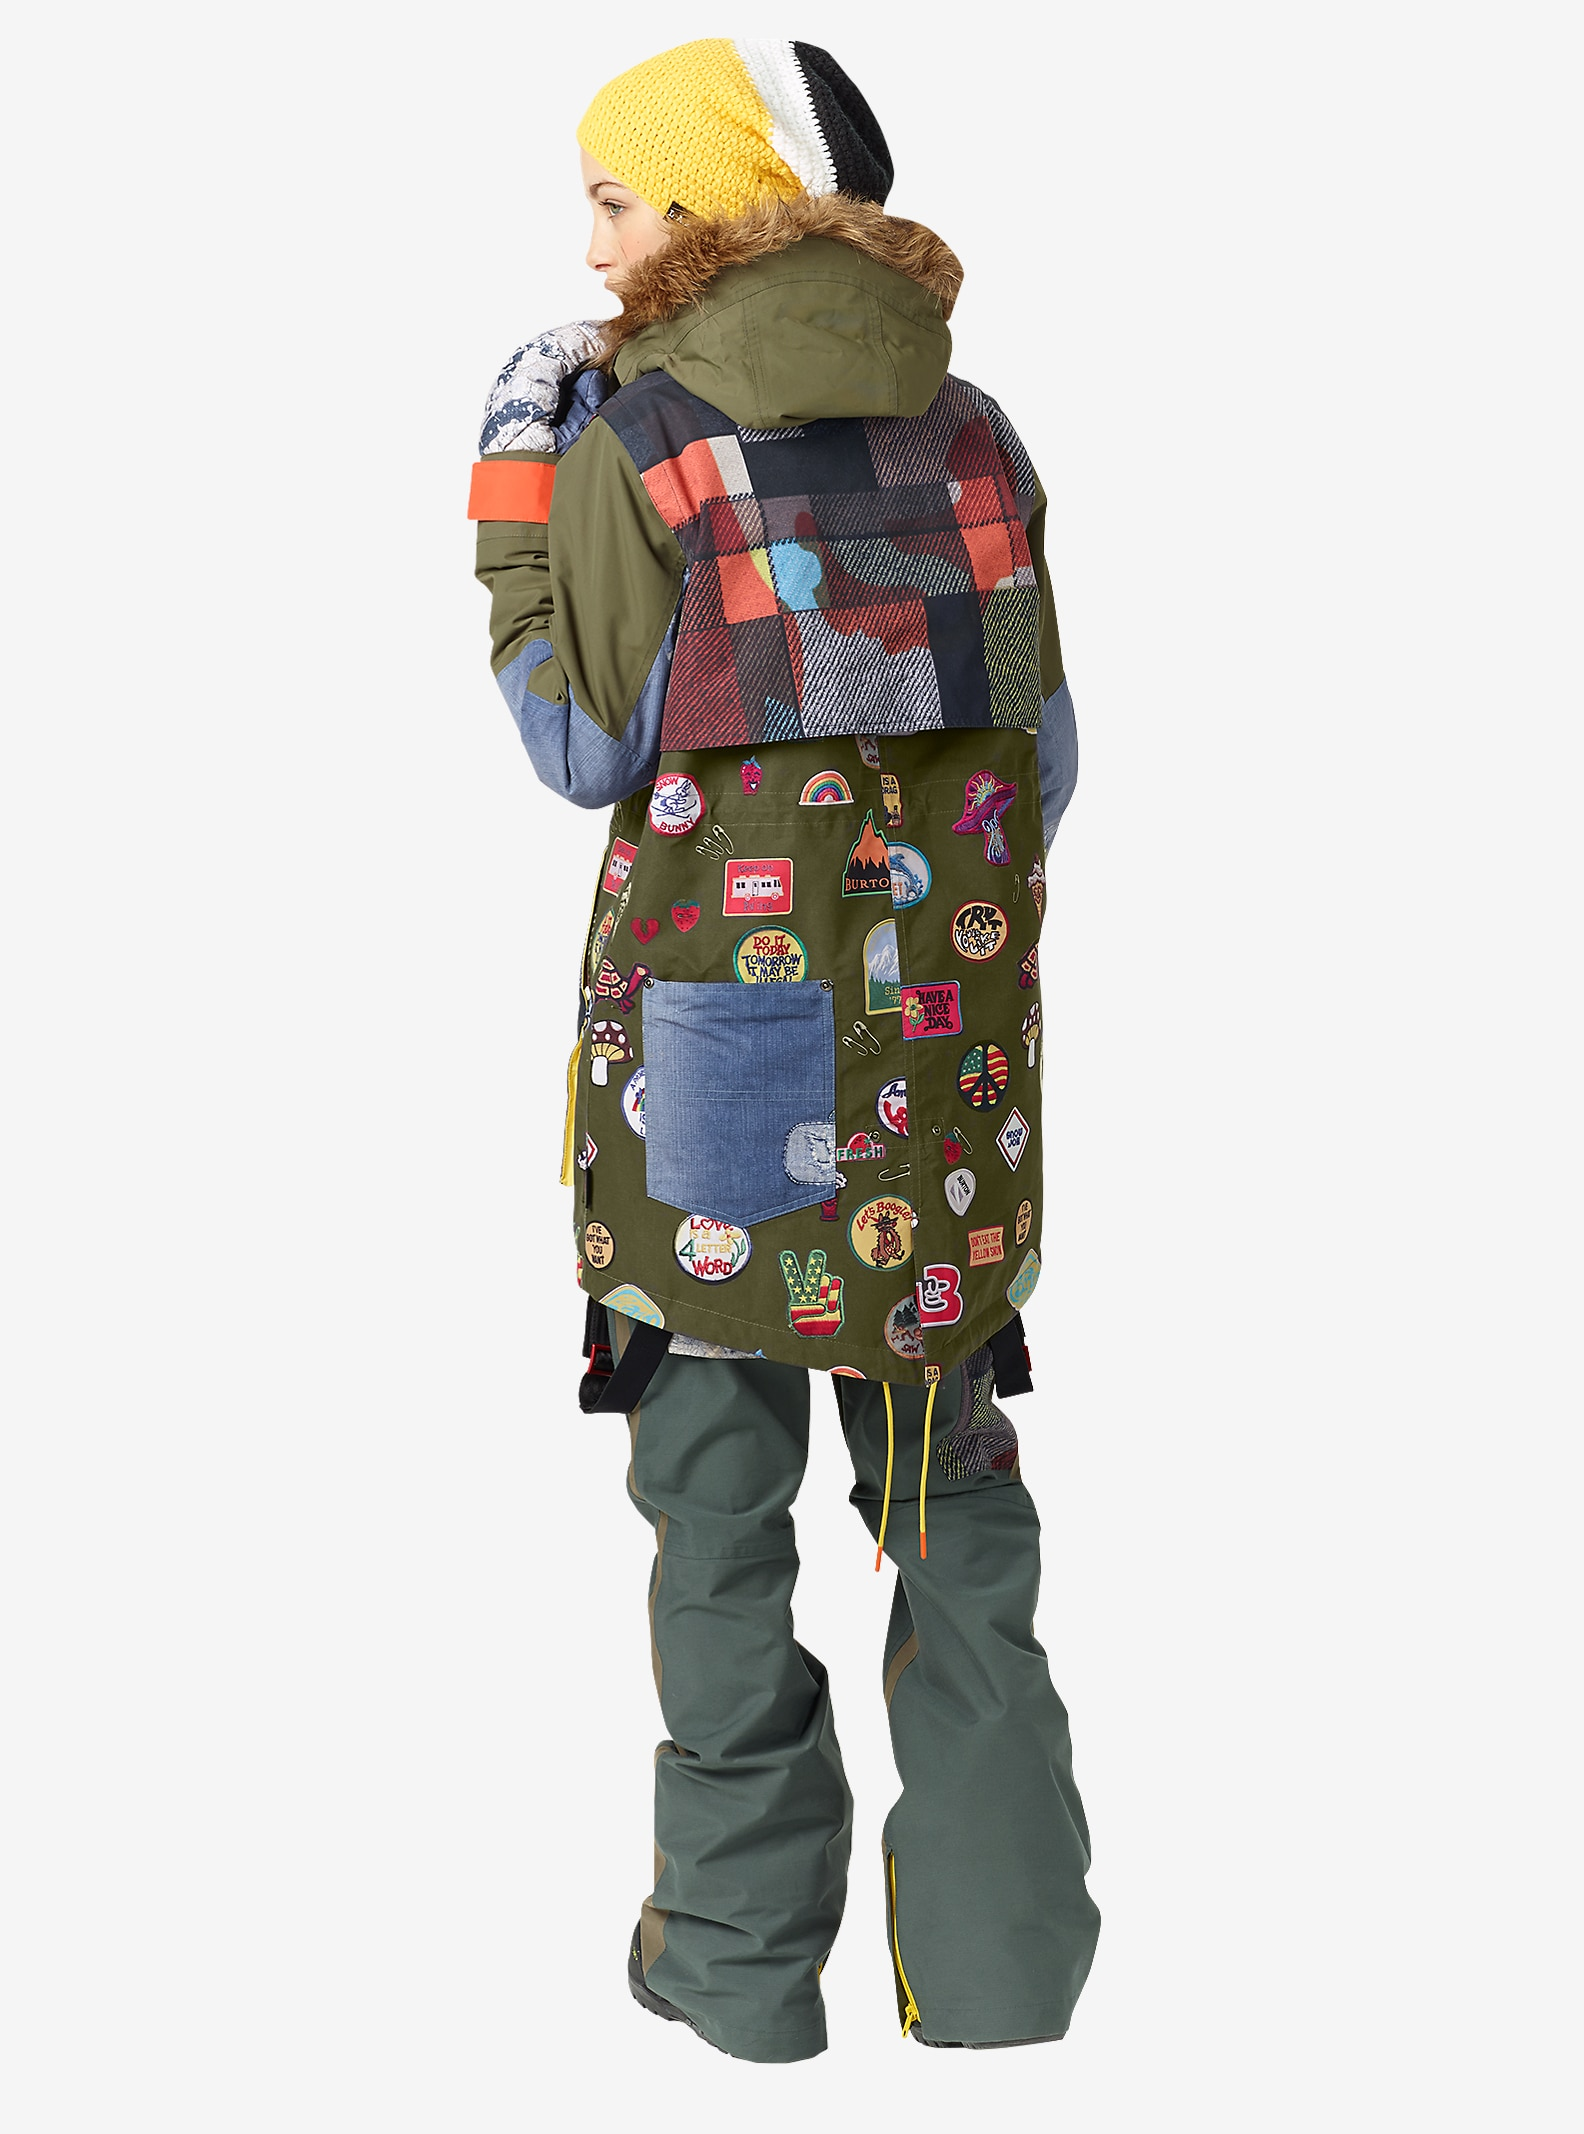 L.A.M.B. x Burton Riff Parka shown in Camp Patches